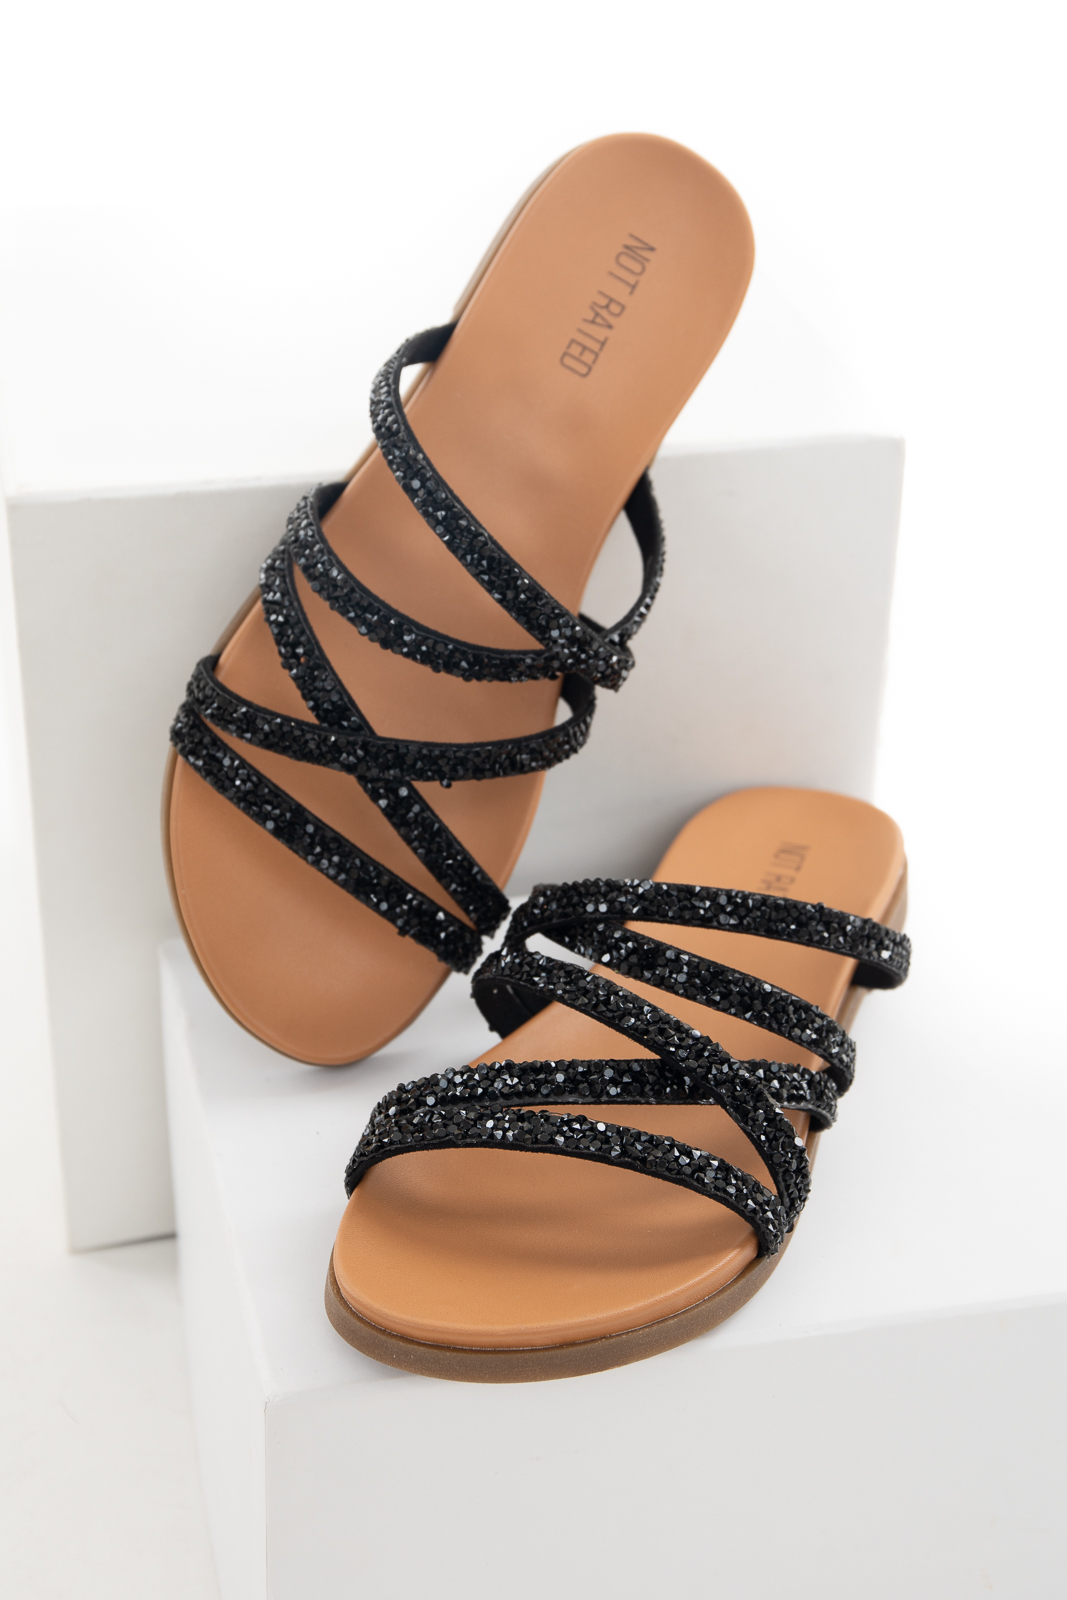 Black Strappy Slip On Flat Sandal with Rhinestone Details